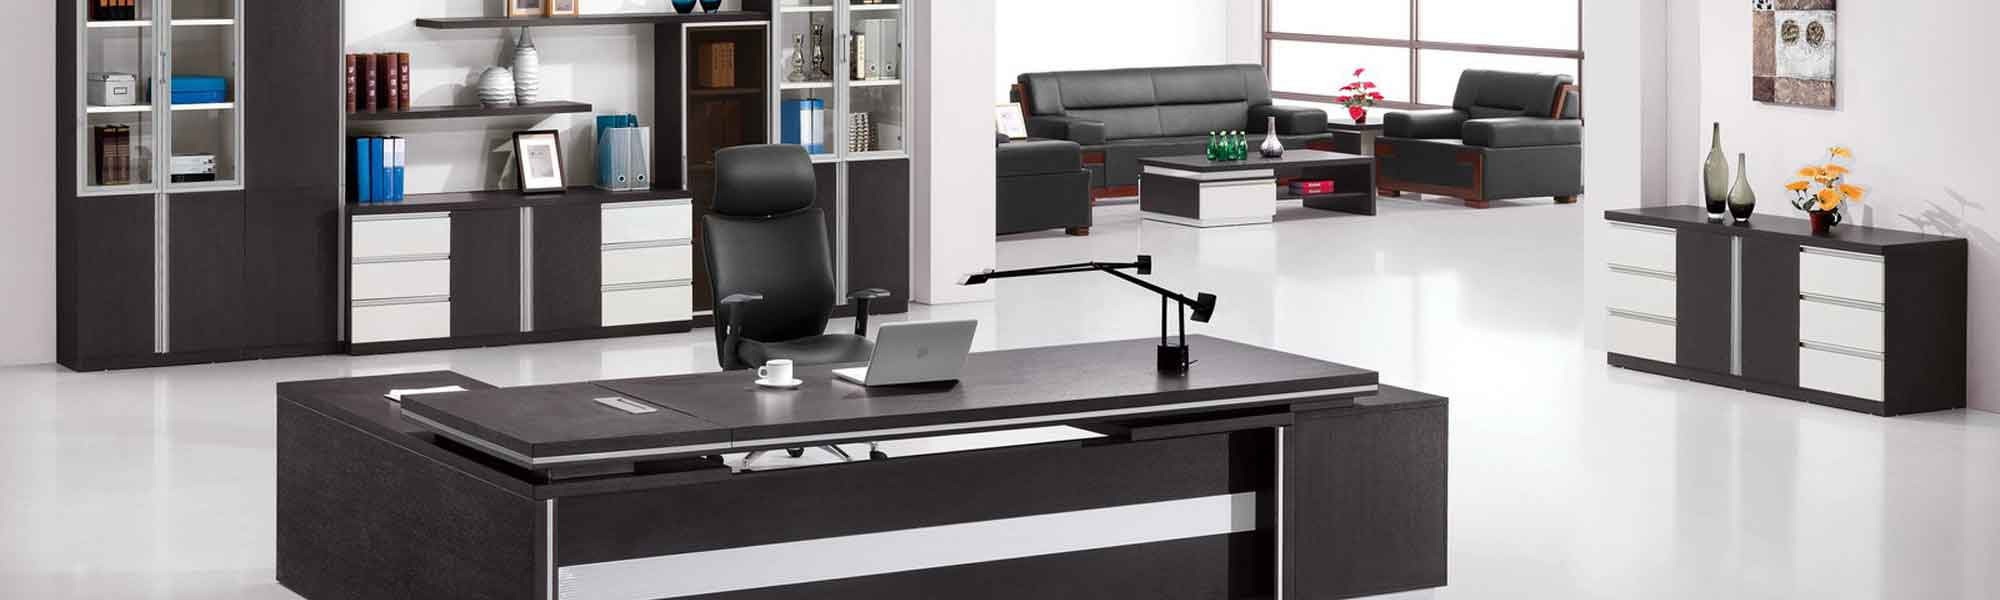 Hitech is a top furniture manufacturer in Lagos.. Supplier of Office & Home furniture. Buy WHOLESALE furniture in Nigeria. Delivery Nationwide!